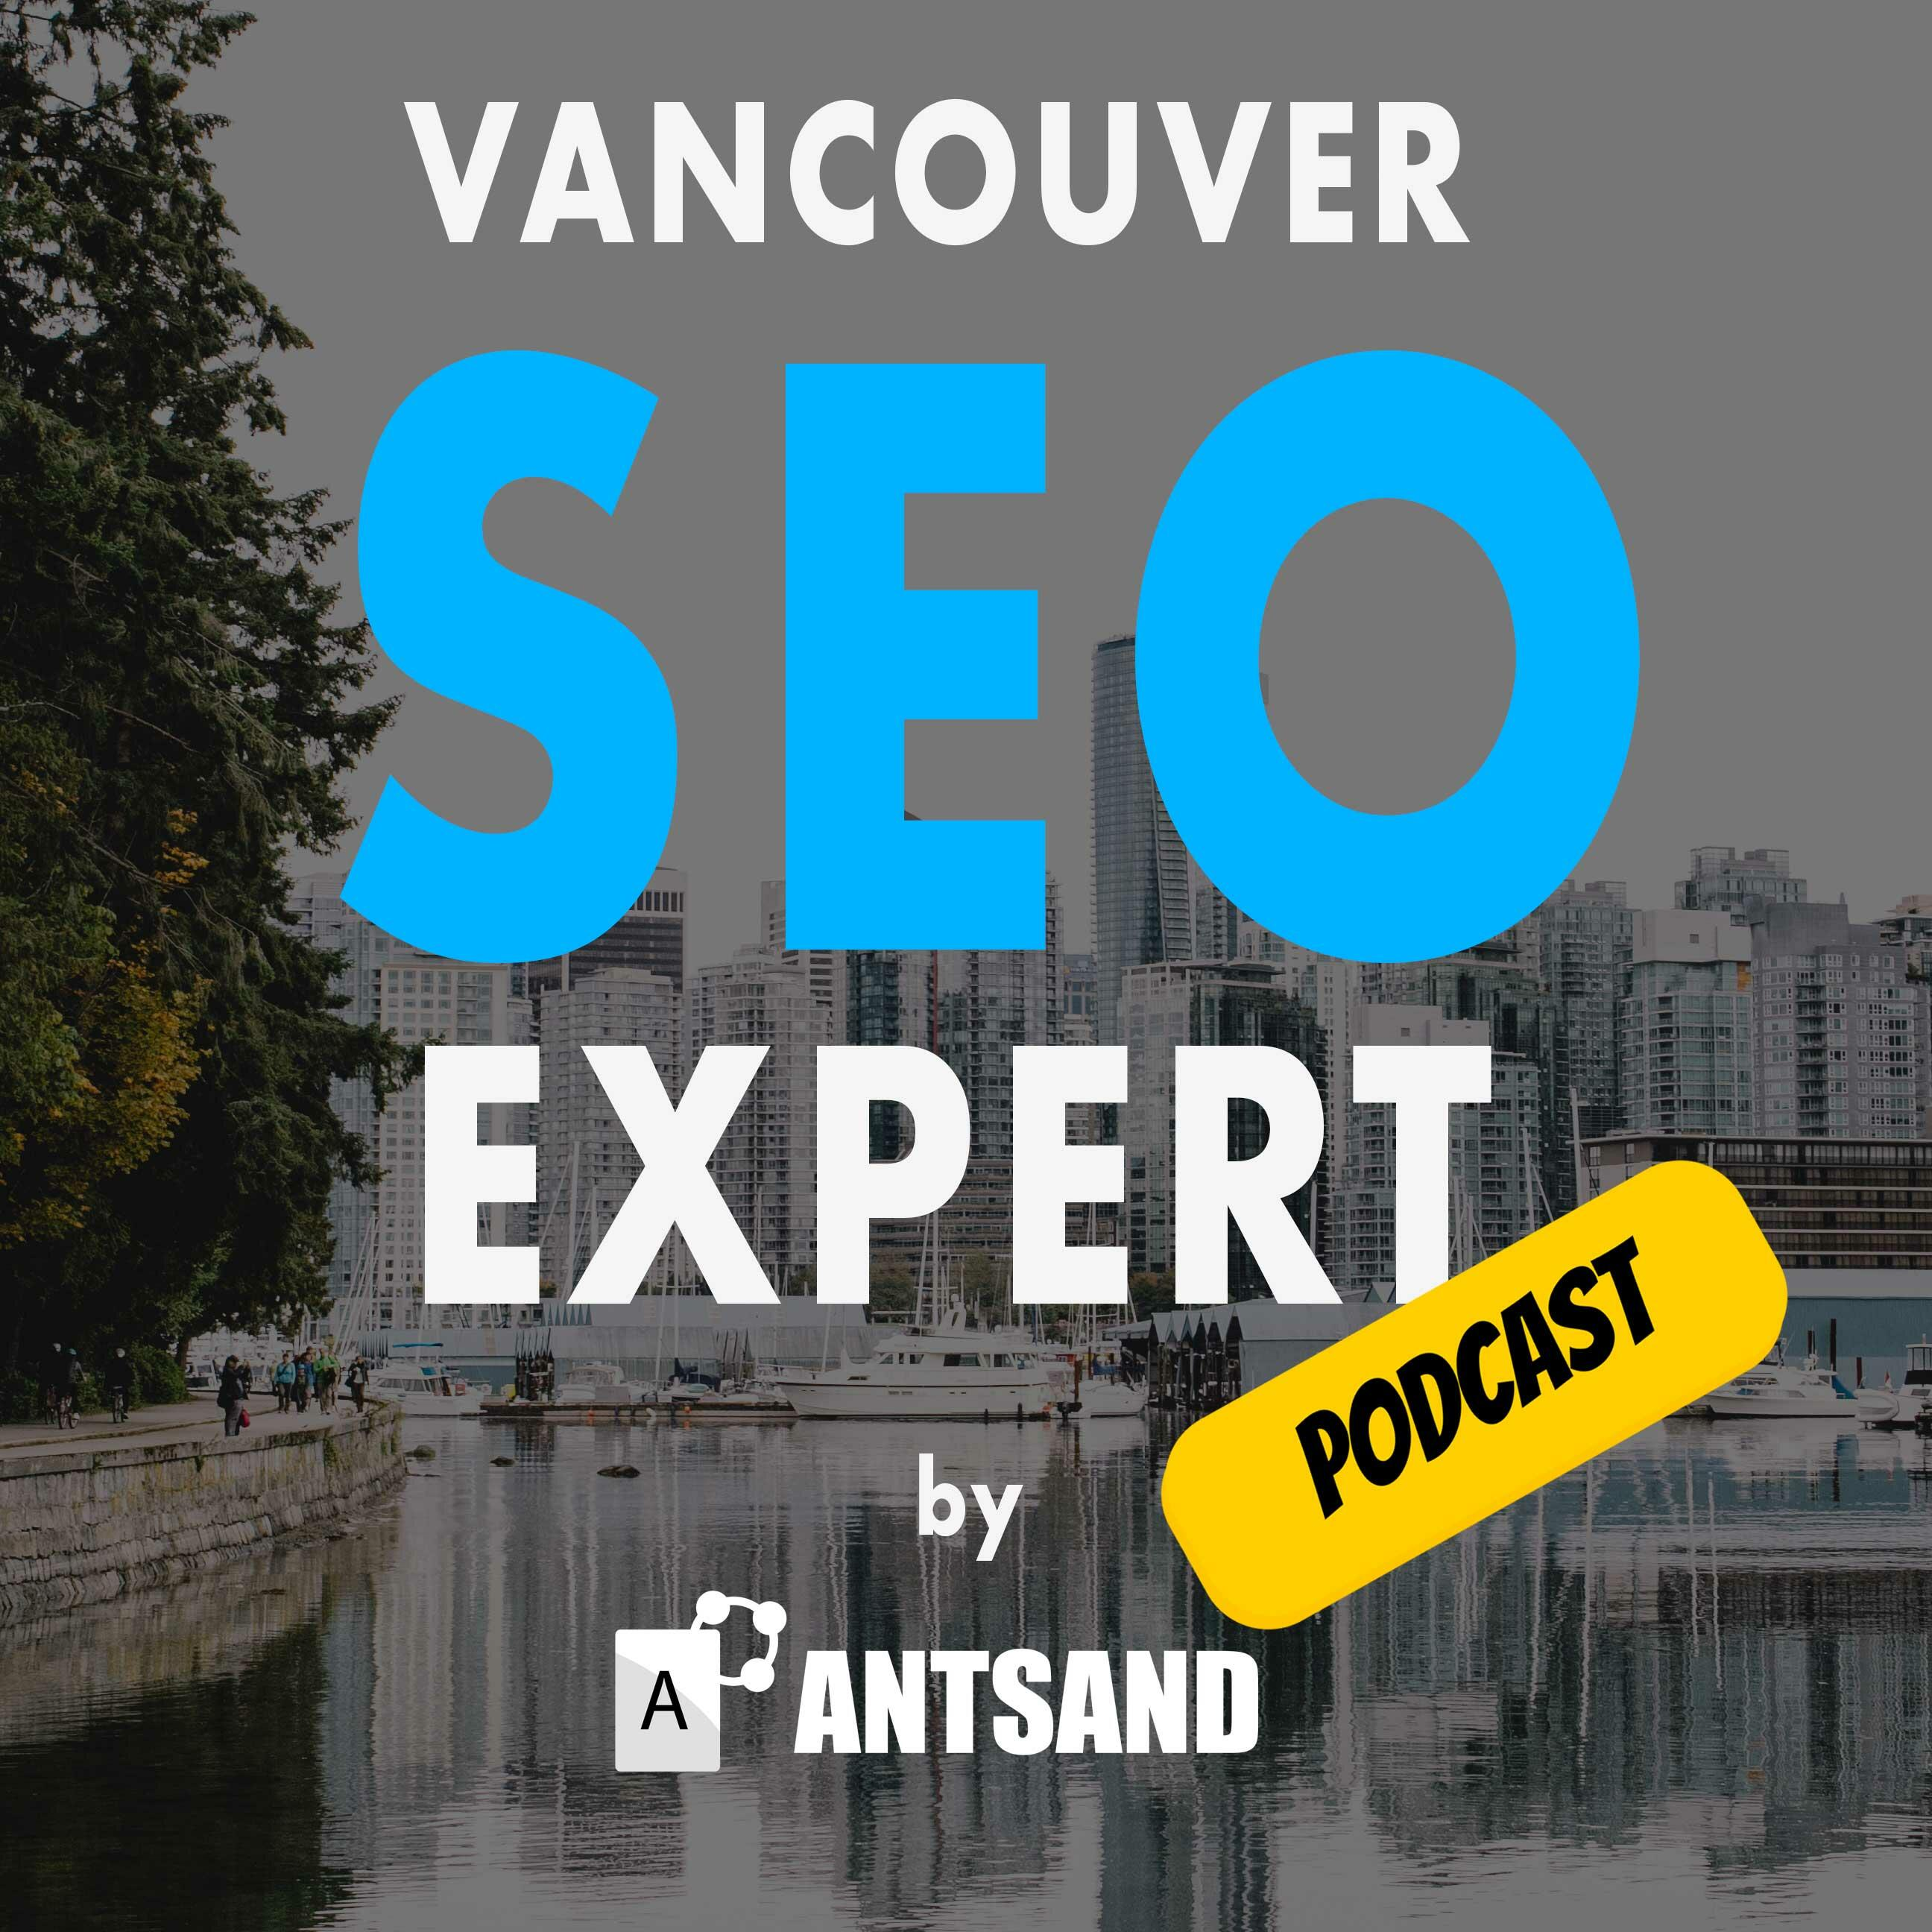 Vancouver SEO Expert with ANTSAND